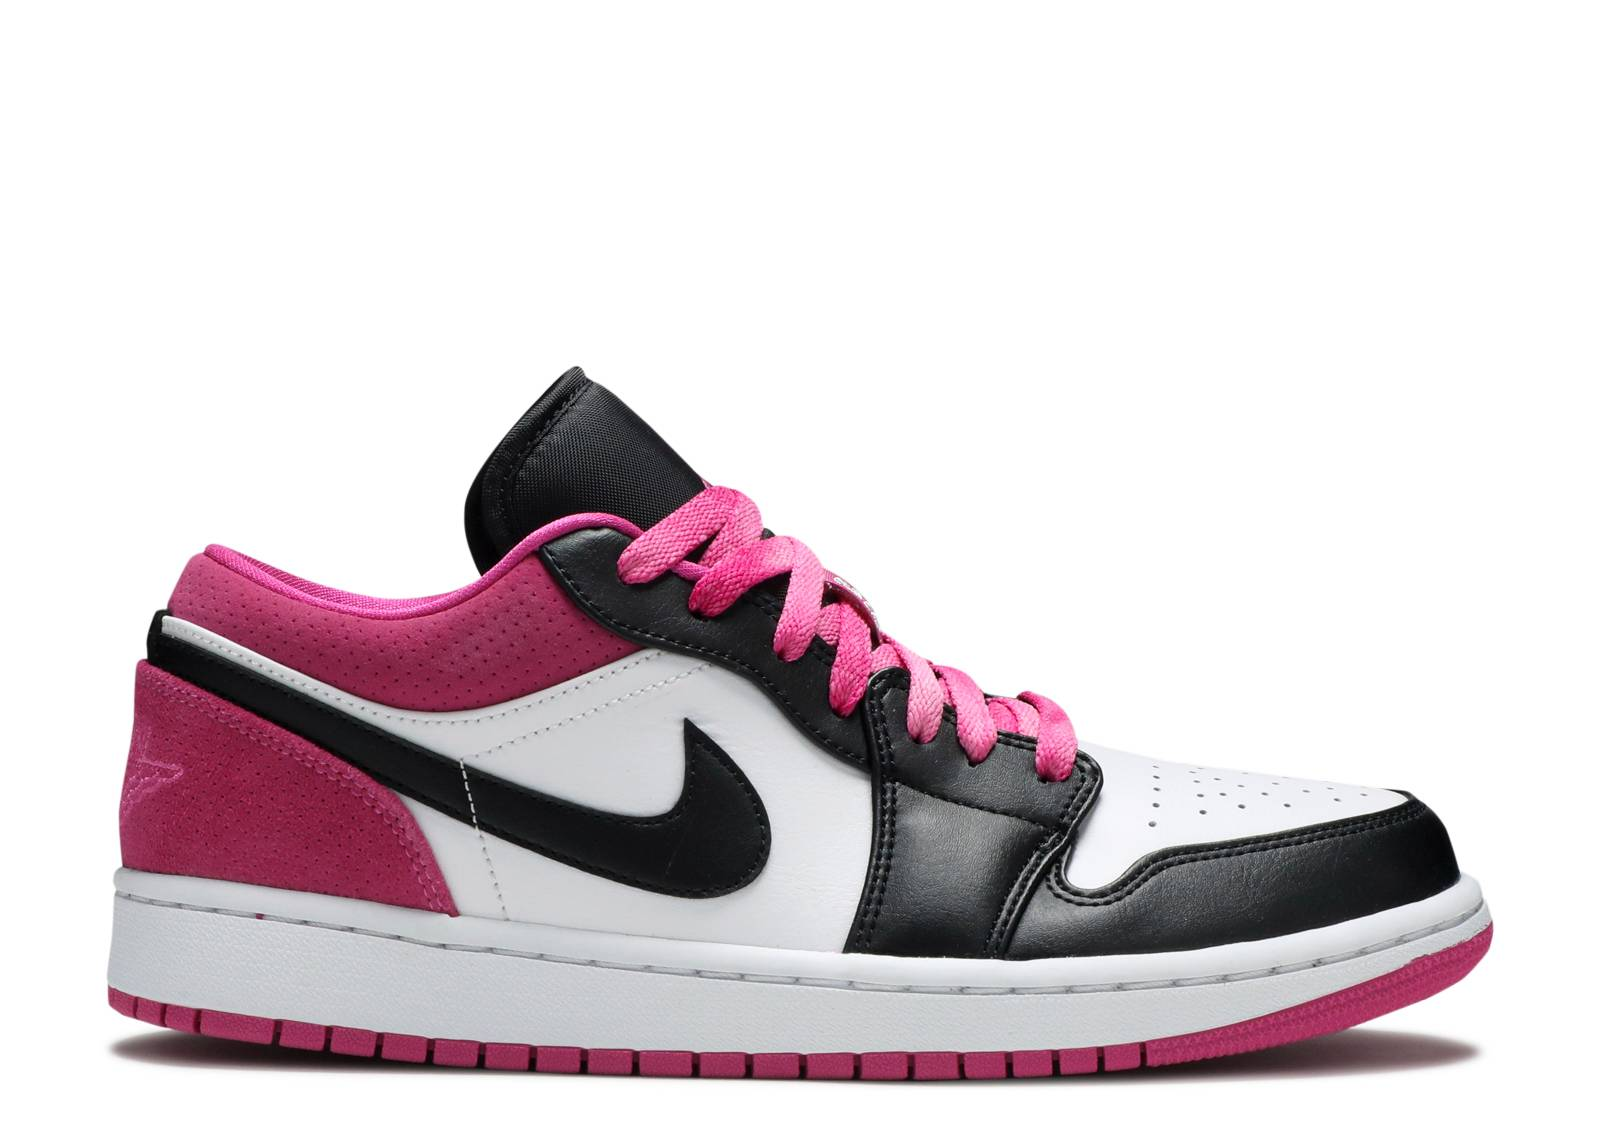 Air Jordan AIR JORDAN 1 LOW SE 'FUCHSIA'